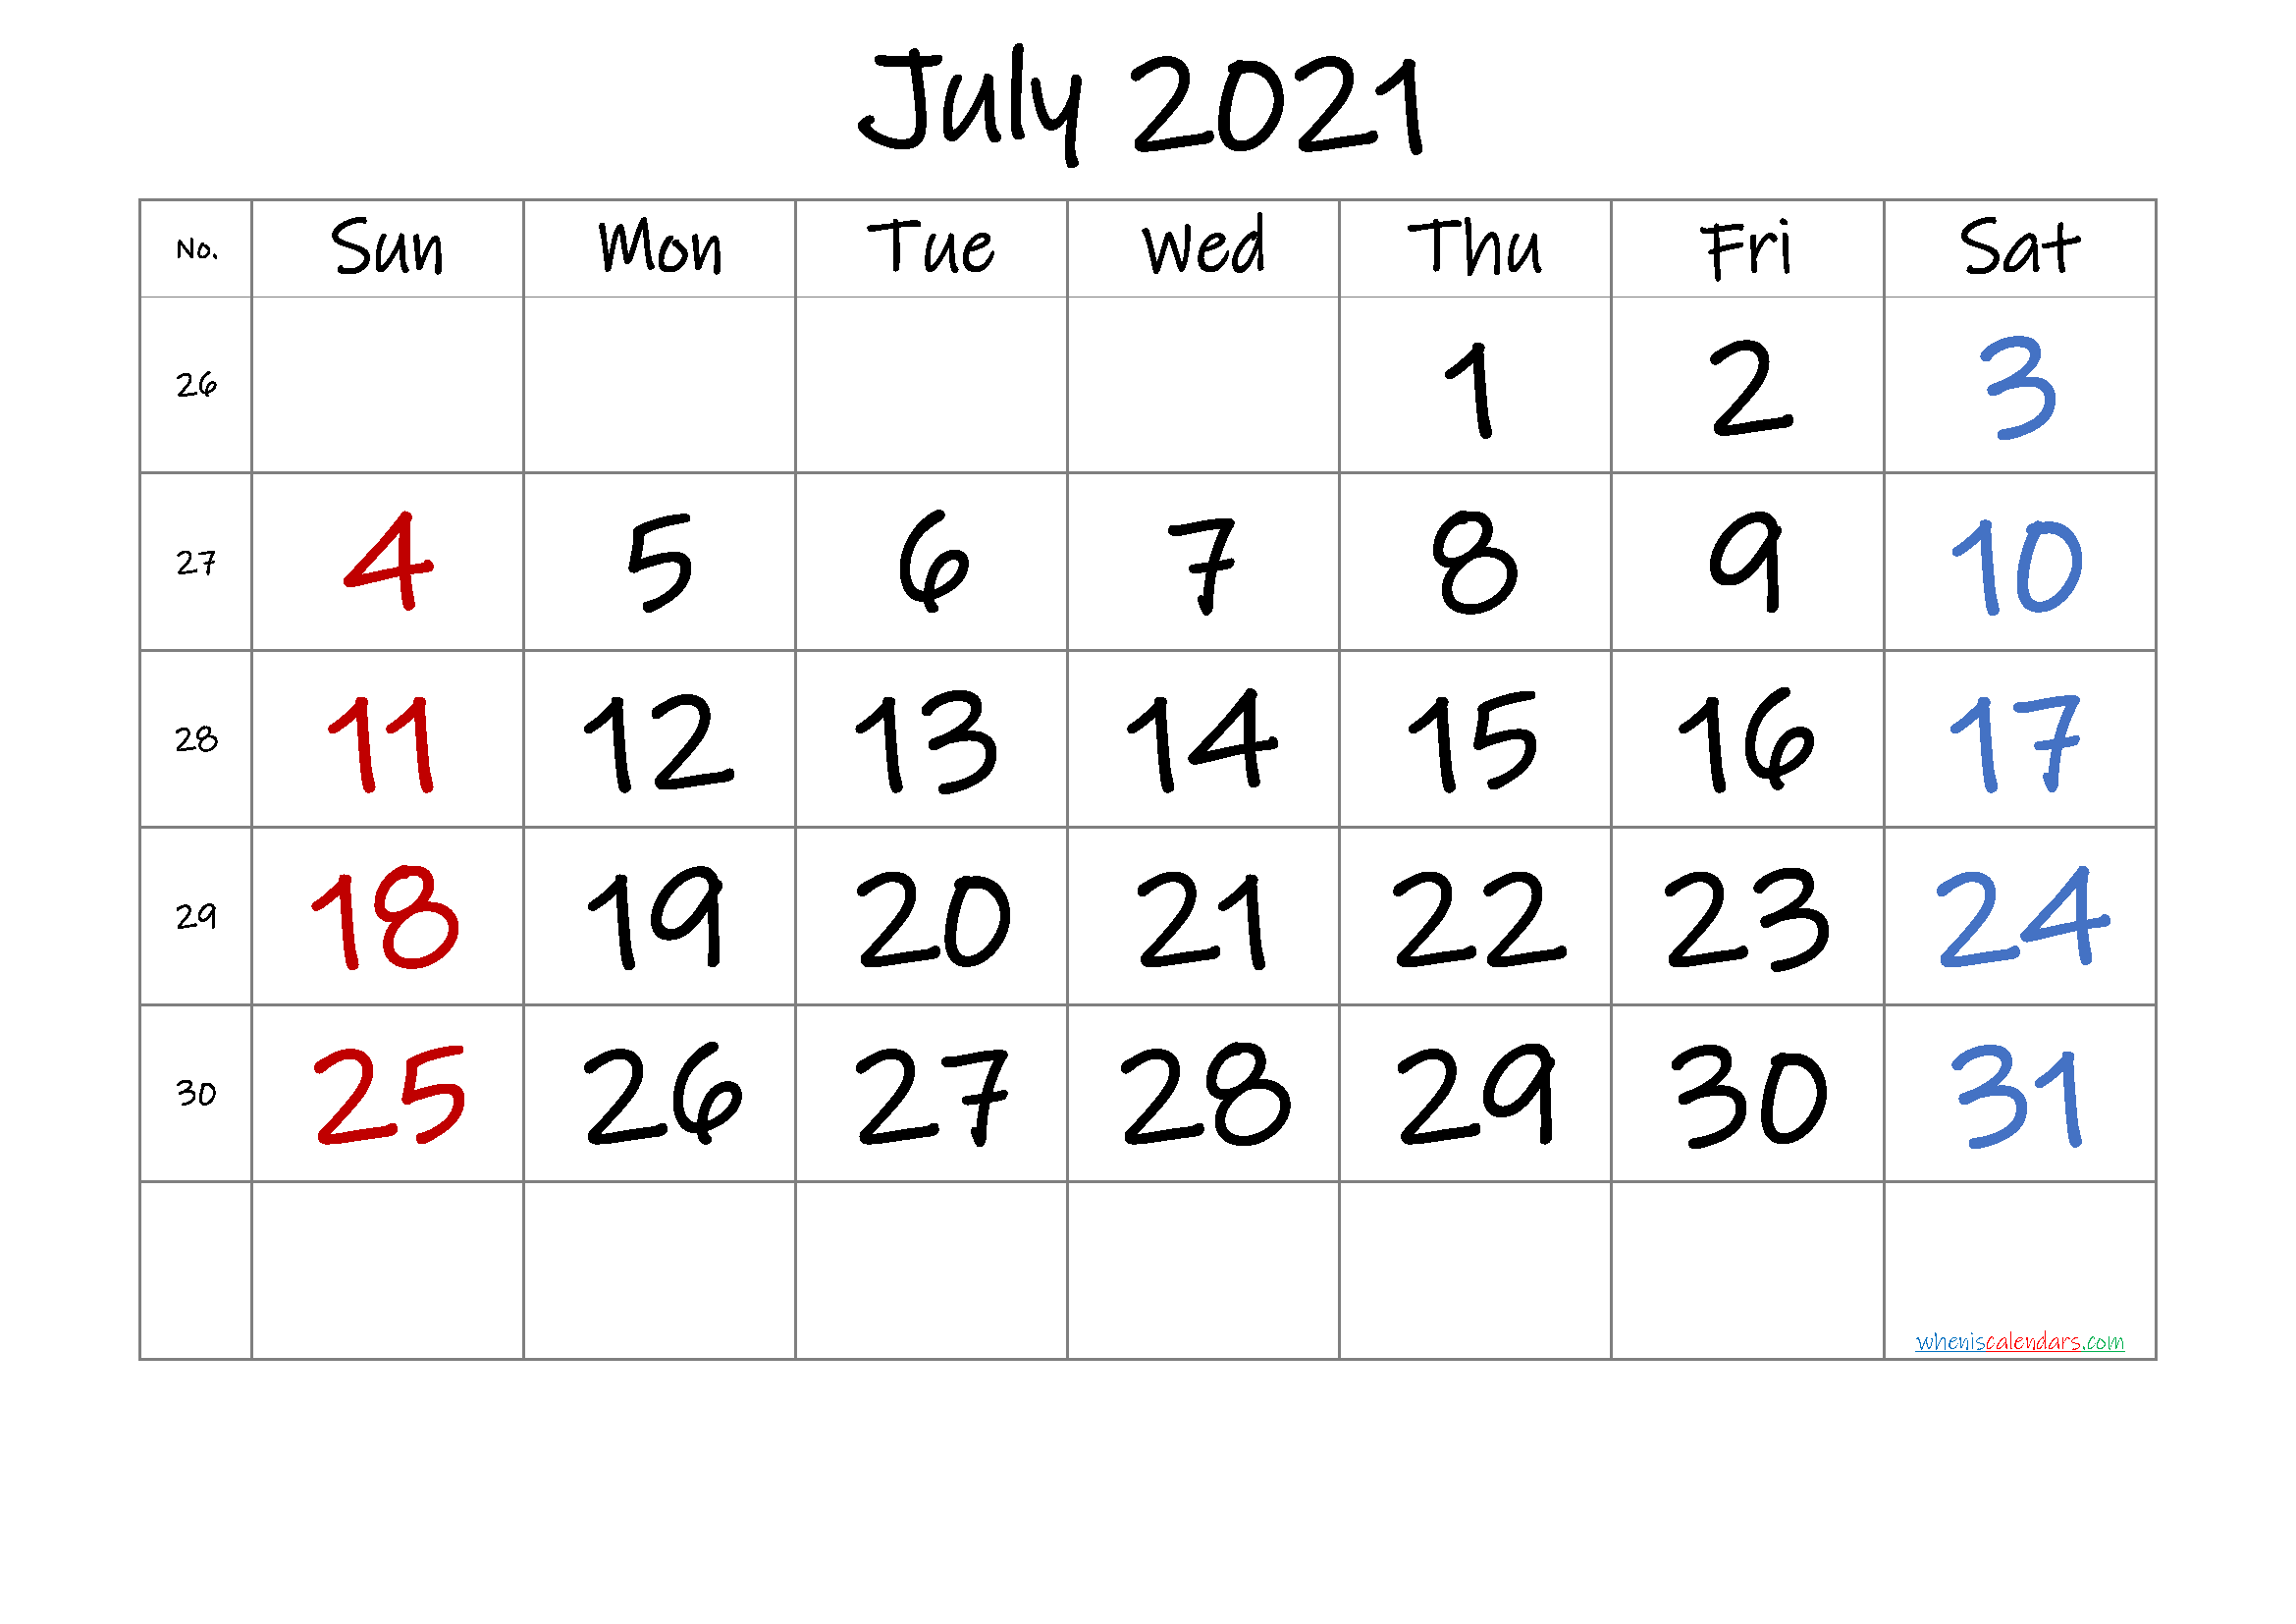 Free July 2021 Calendar with Week Numbers